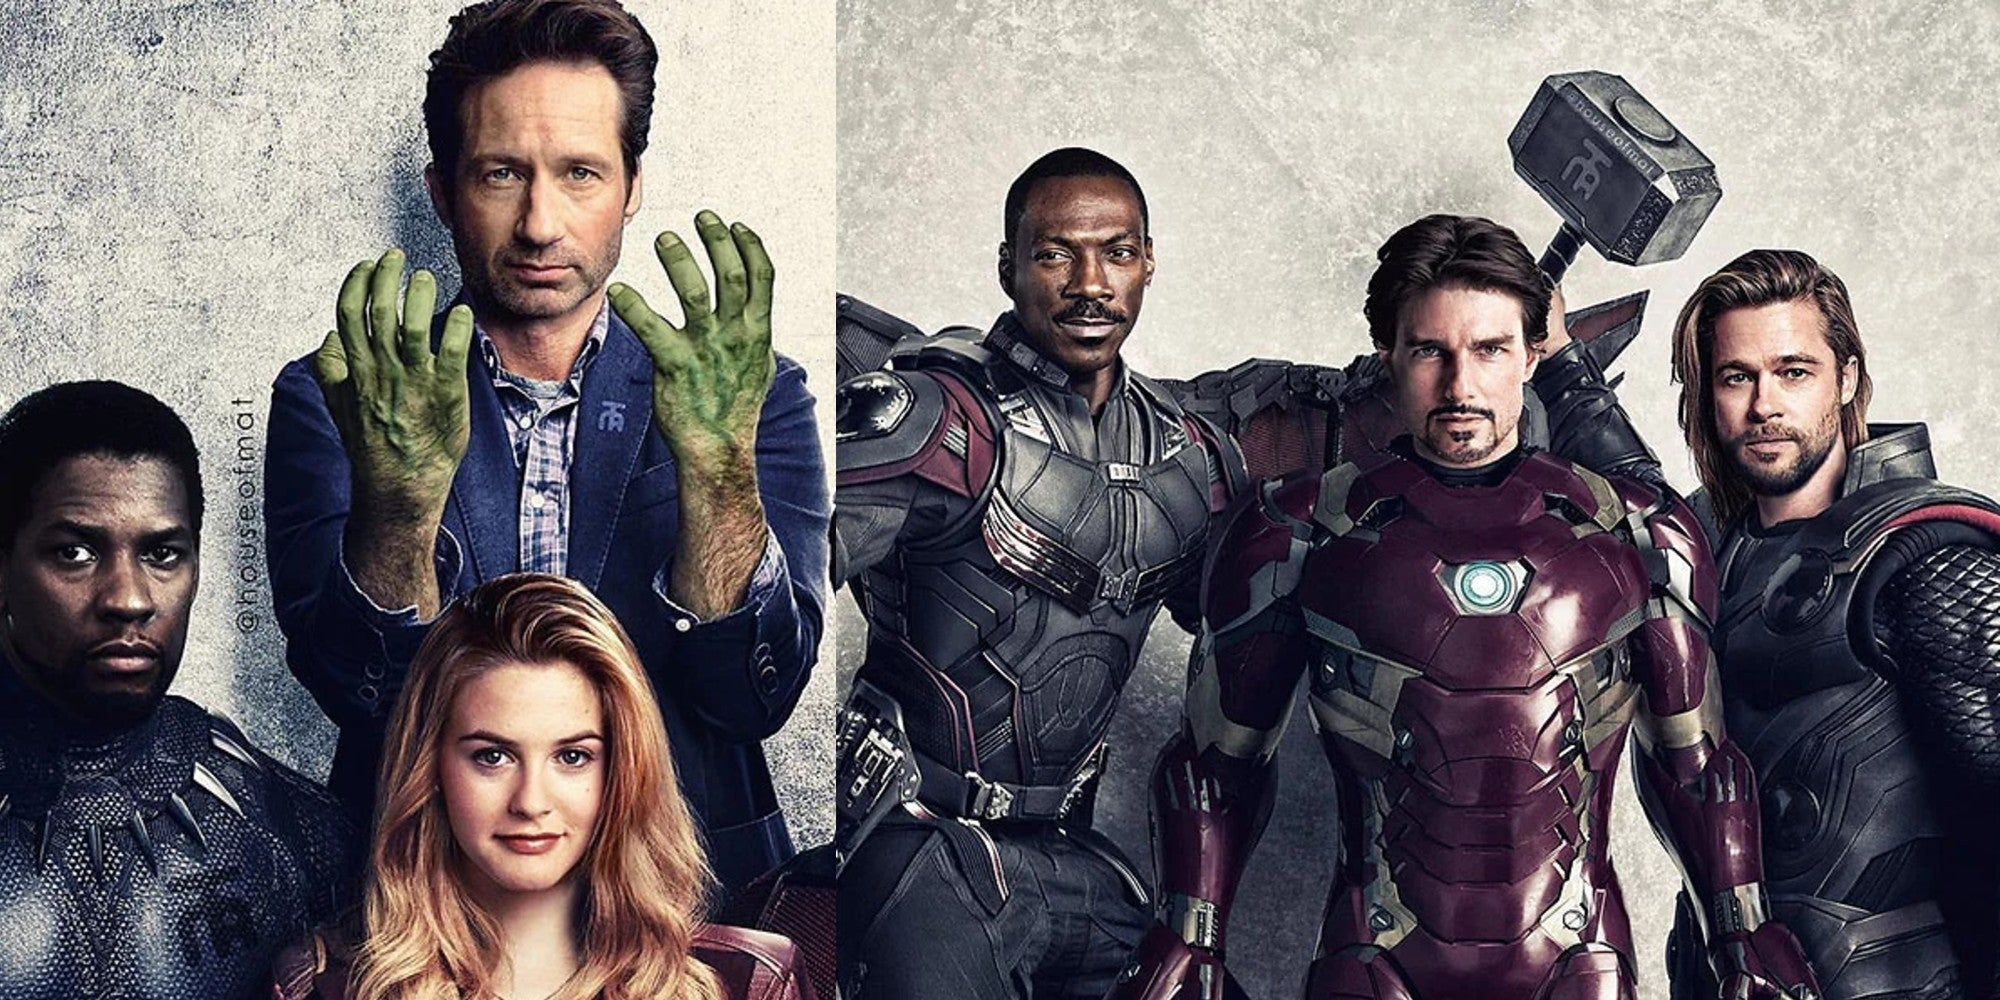 Avengers fan reimagines what Marvel movies would have looked like if they were made in the 90s